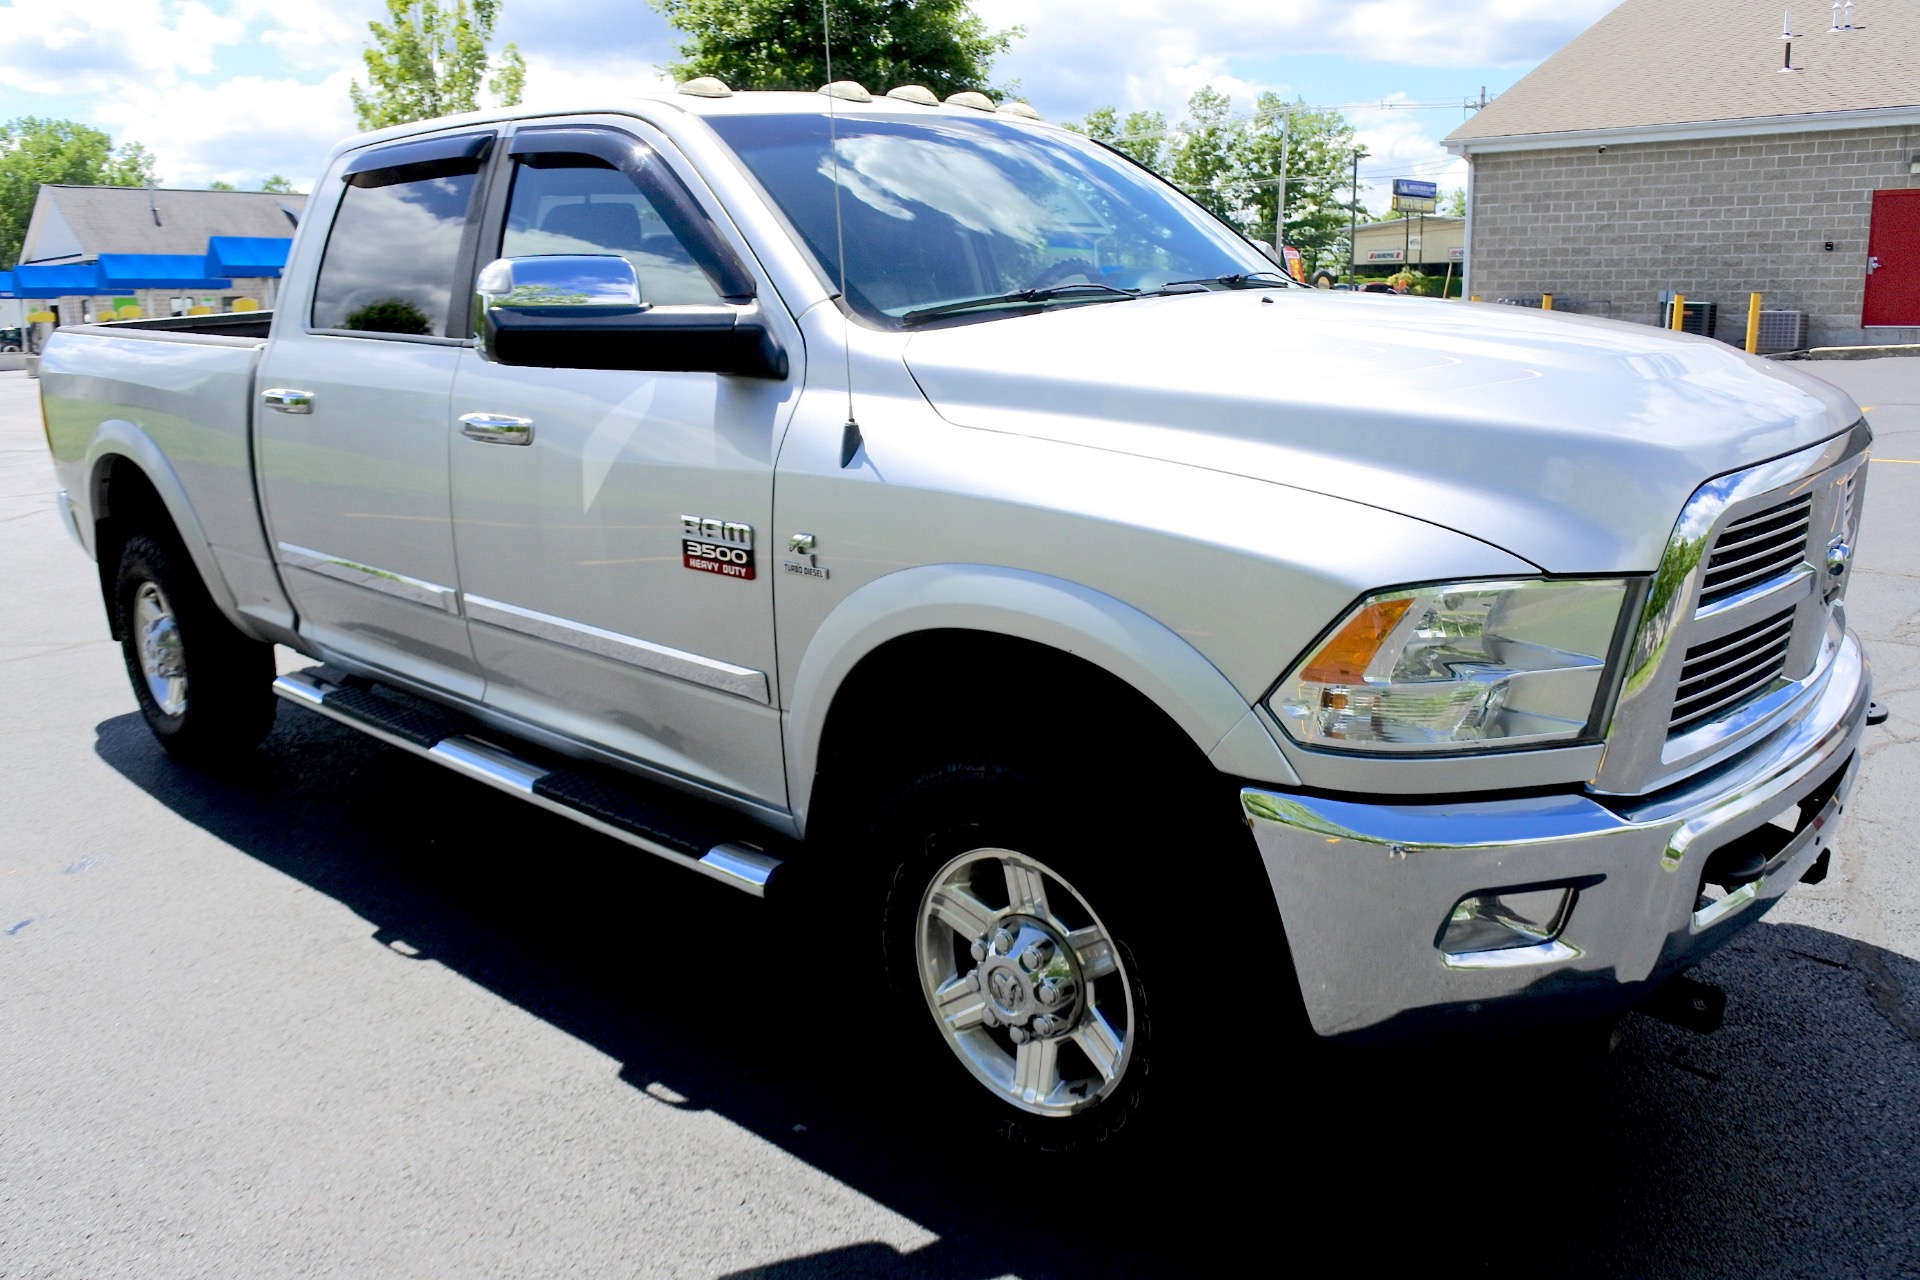 Used 2010 Dodge Ram 3500 4WD Crew Cab 149' Laramie Used 2010 Dodge Ram 3500 4WD Crew Cab 149' Laramie for sale  at Metro West Motorcars LLC in Shrewsbury MA 7